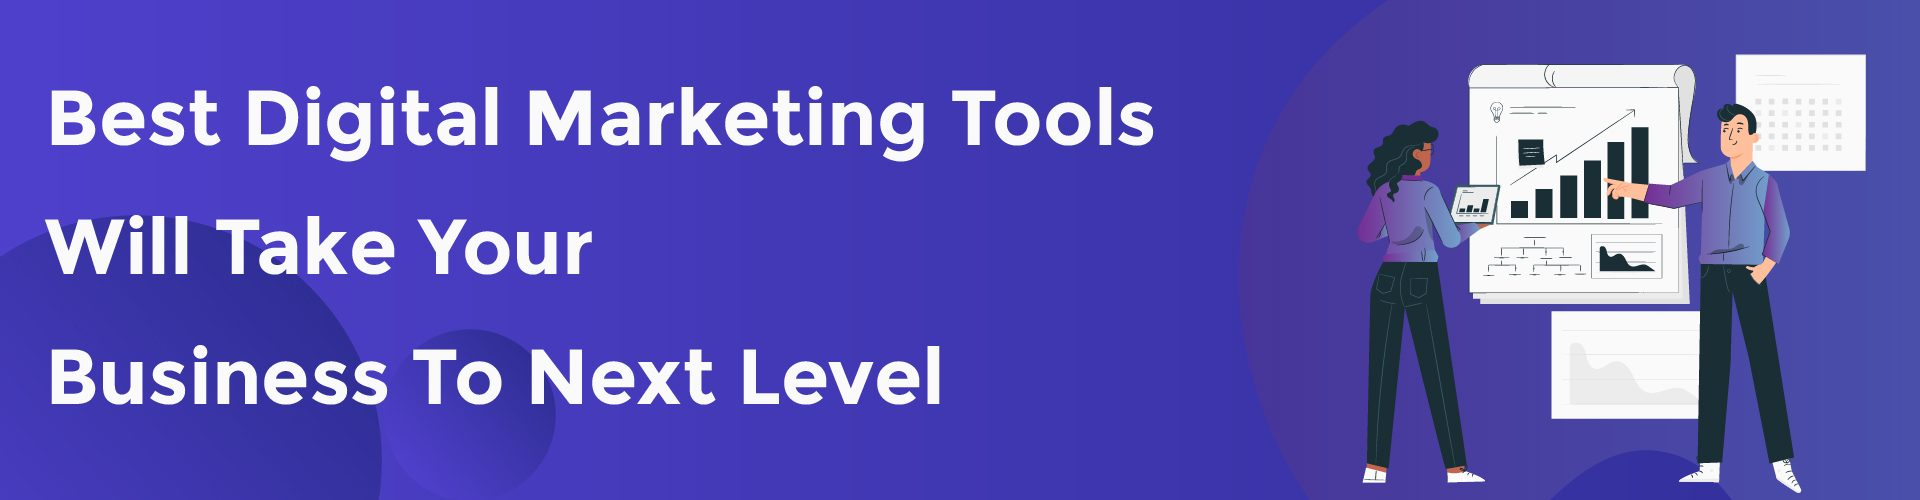 These best digital marketing tools will take your business to the next level